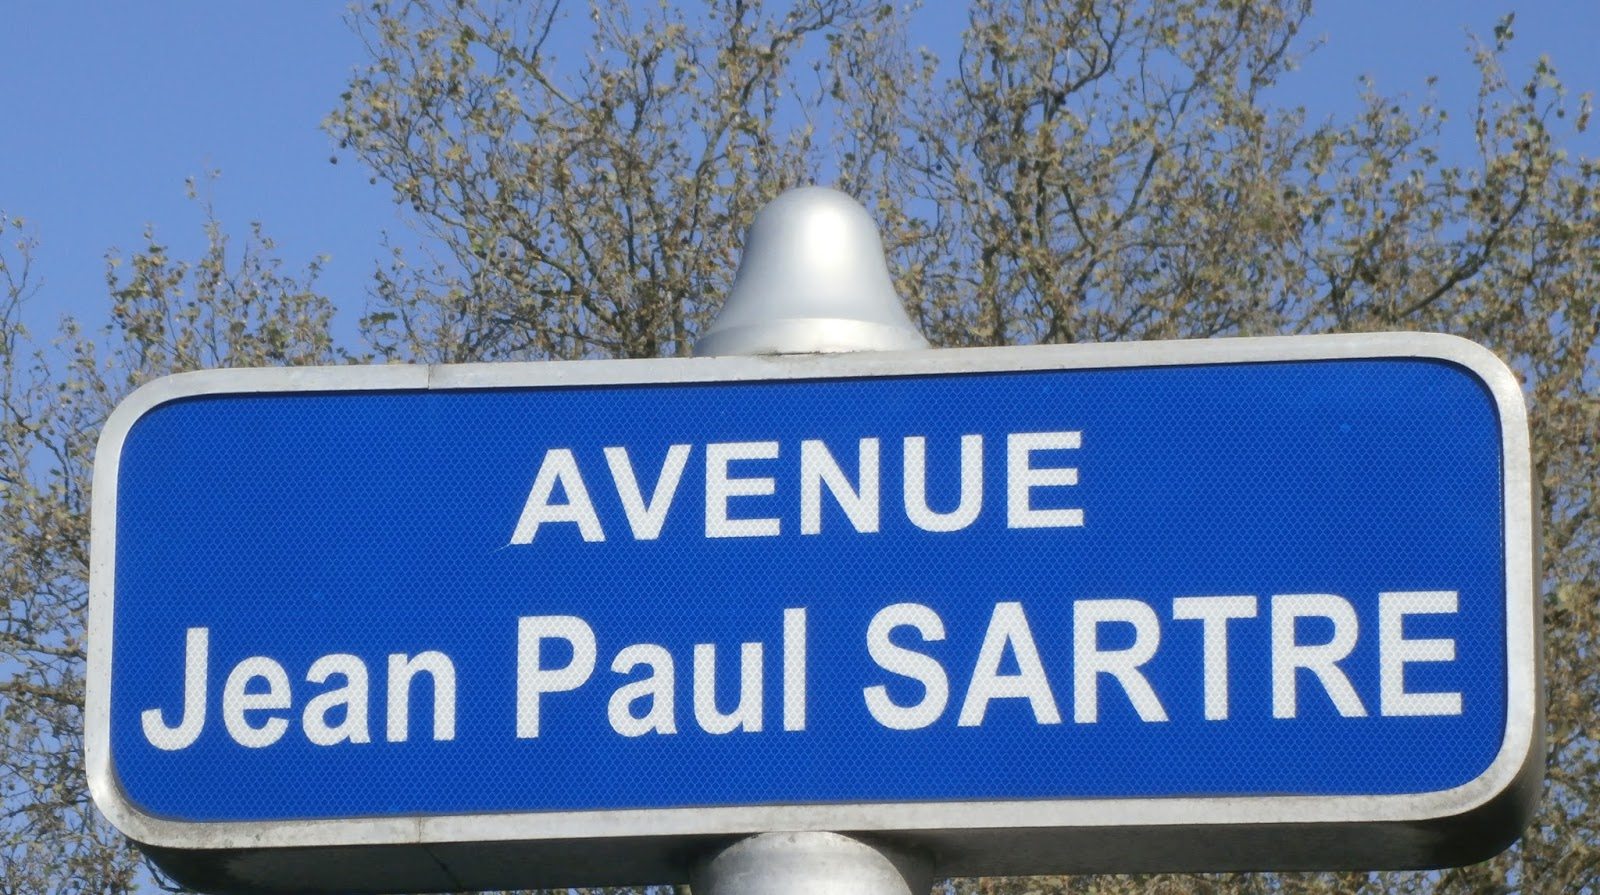 Corfu blues and global views: jean paul sartre, existentialism ...